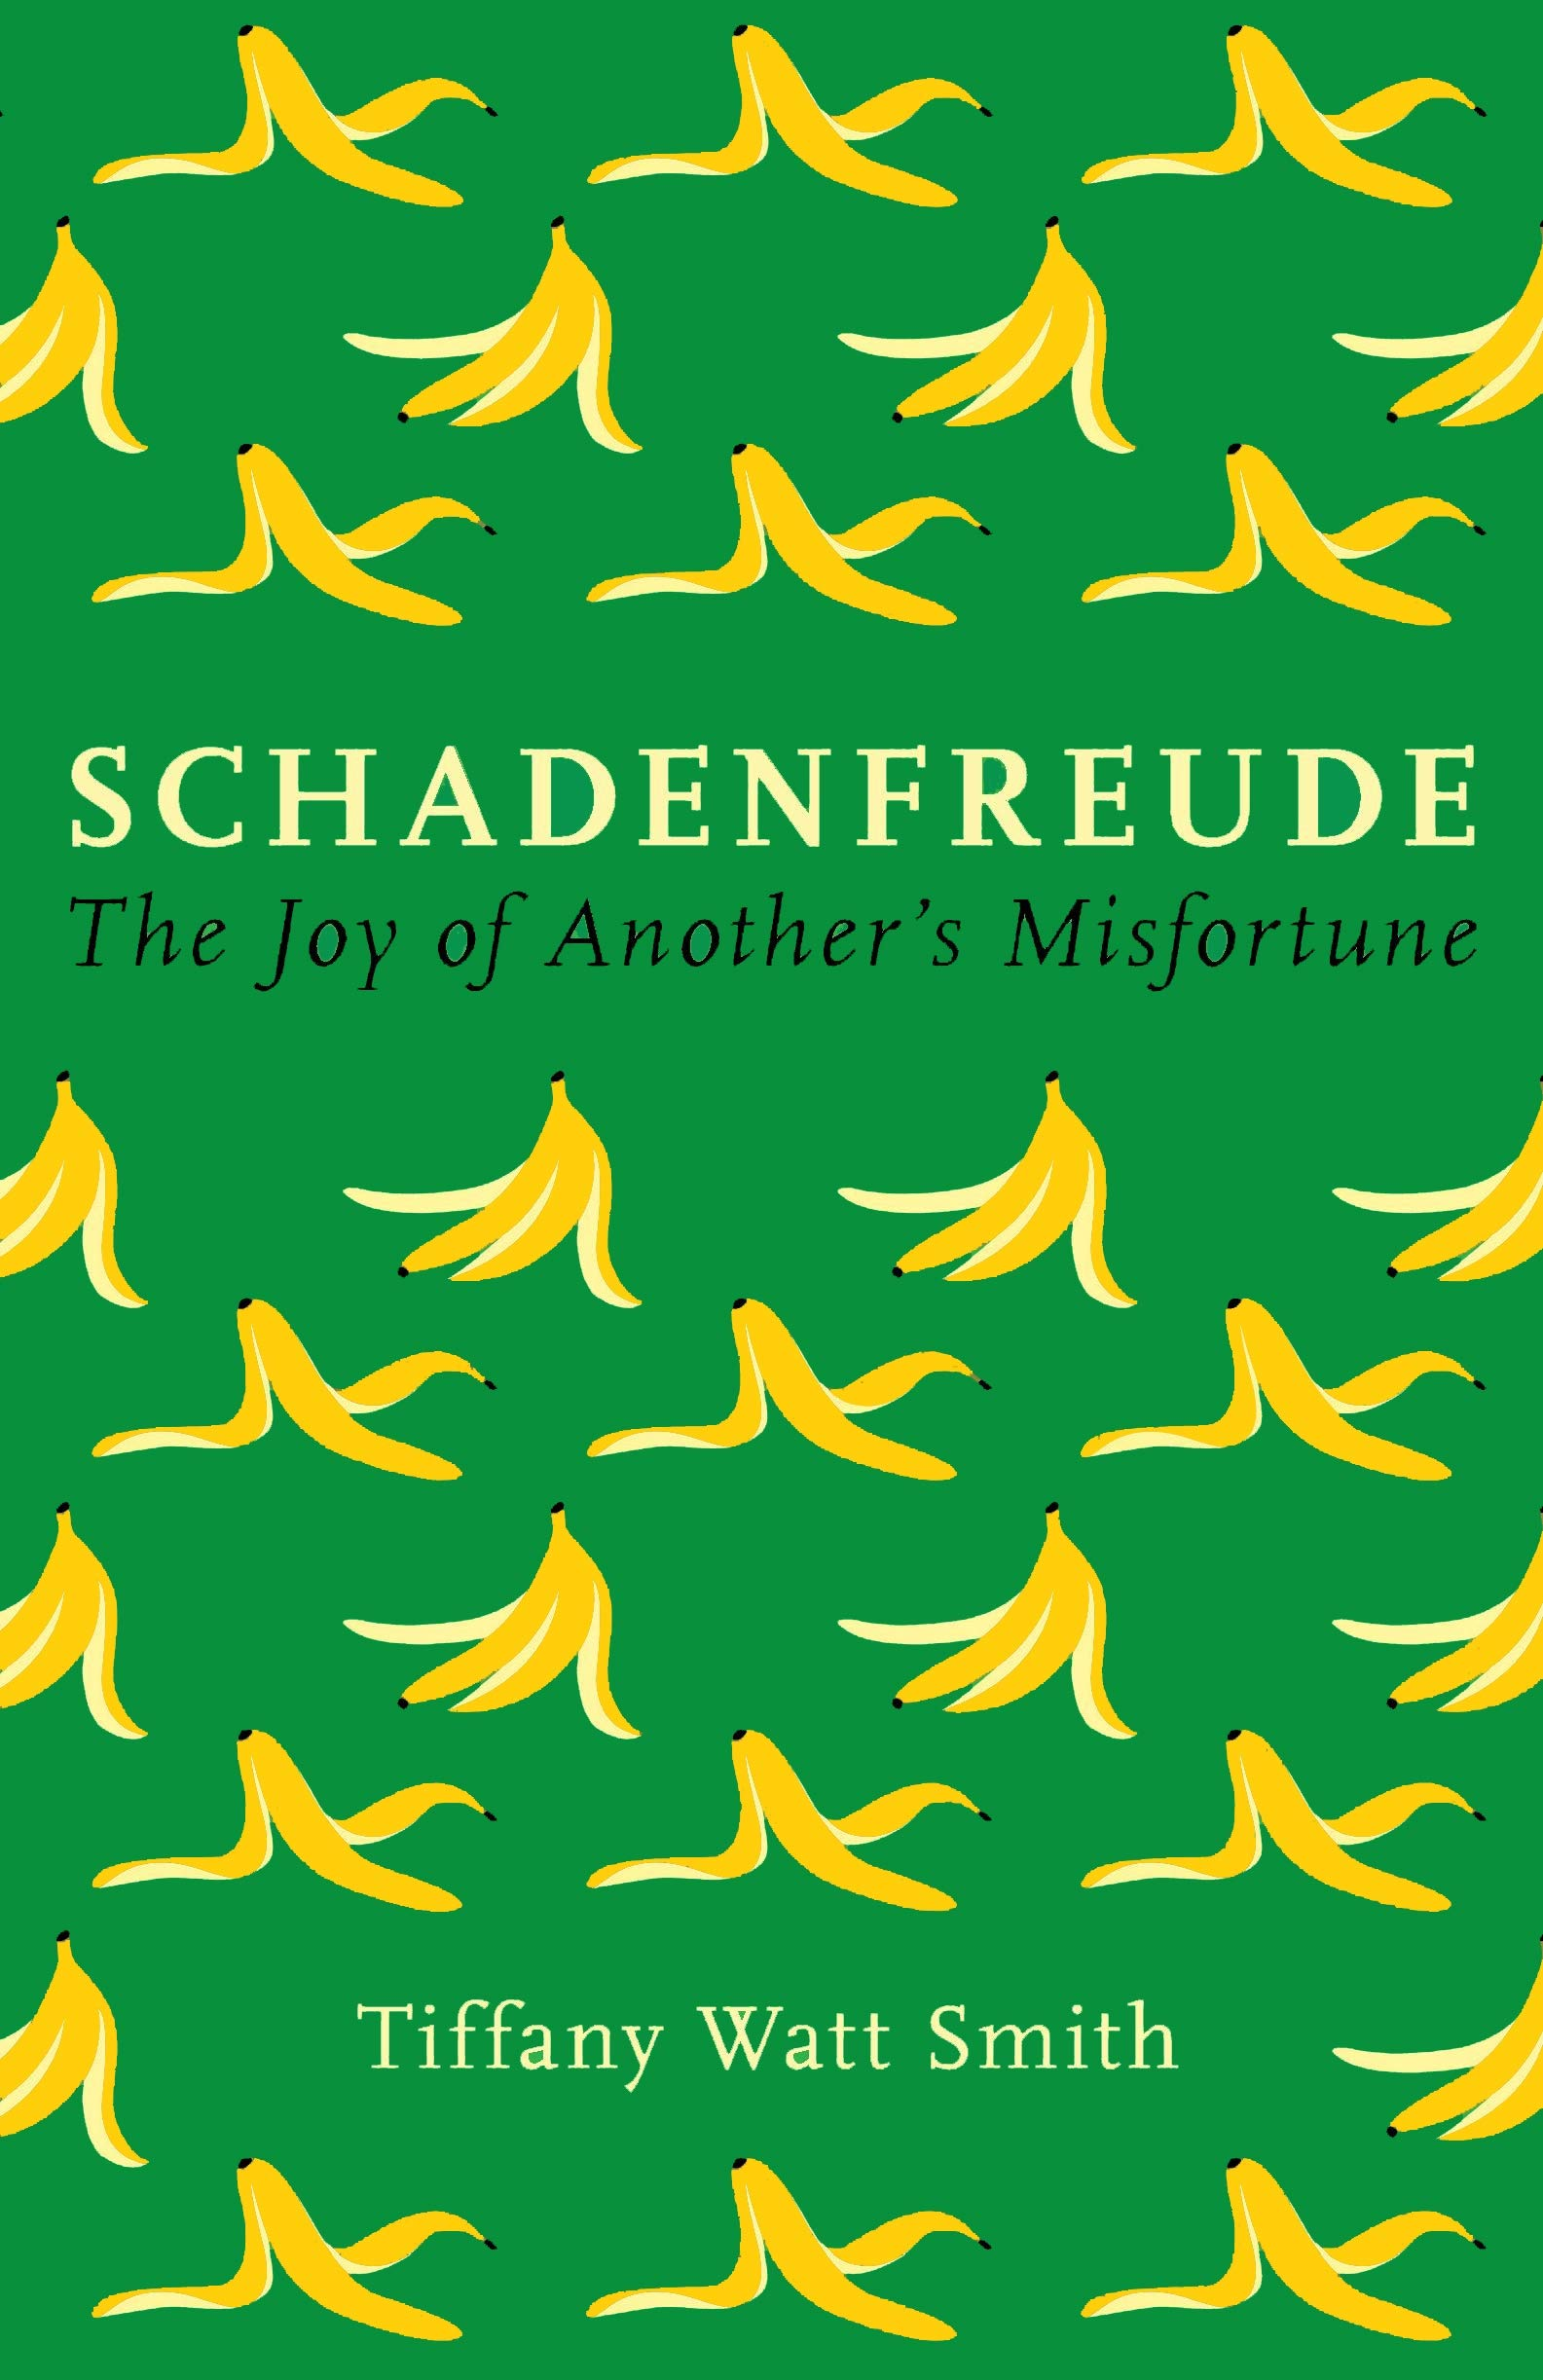 Image result for Schadenfreude: The Joy of Another's Misfortune by Tiffany Watt Smith